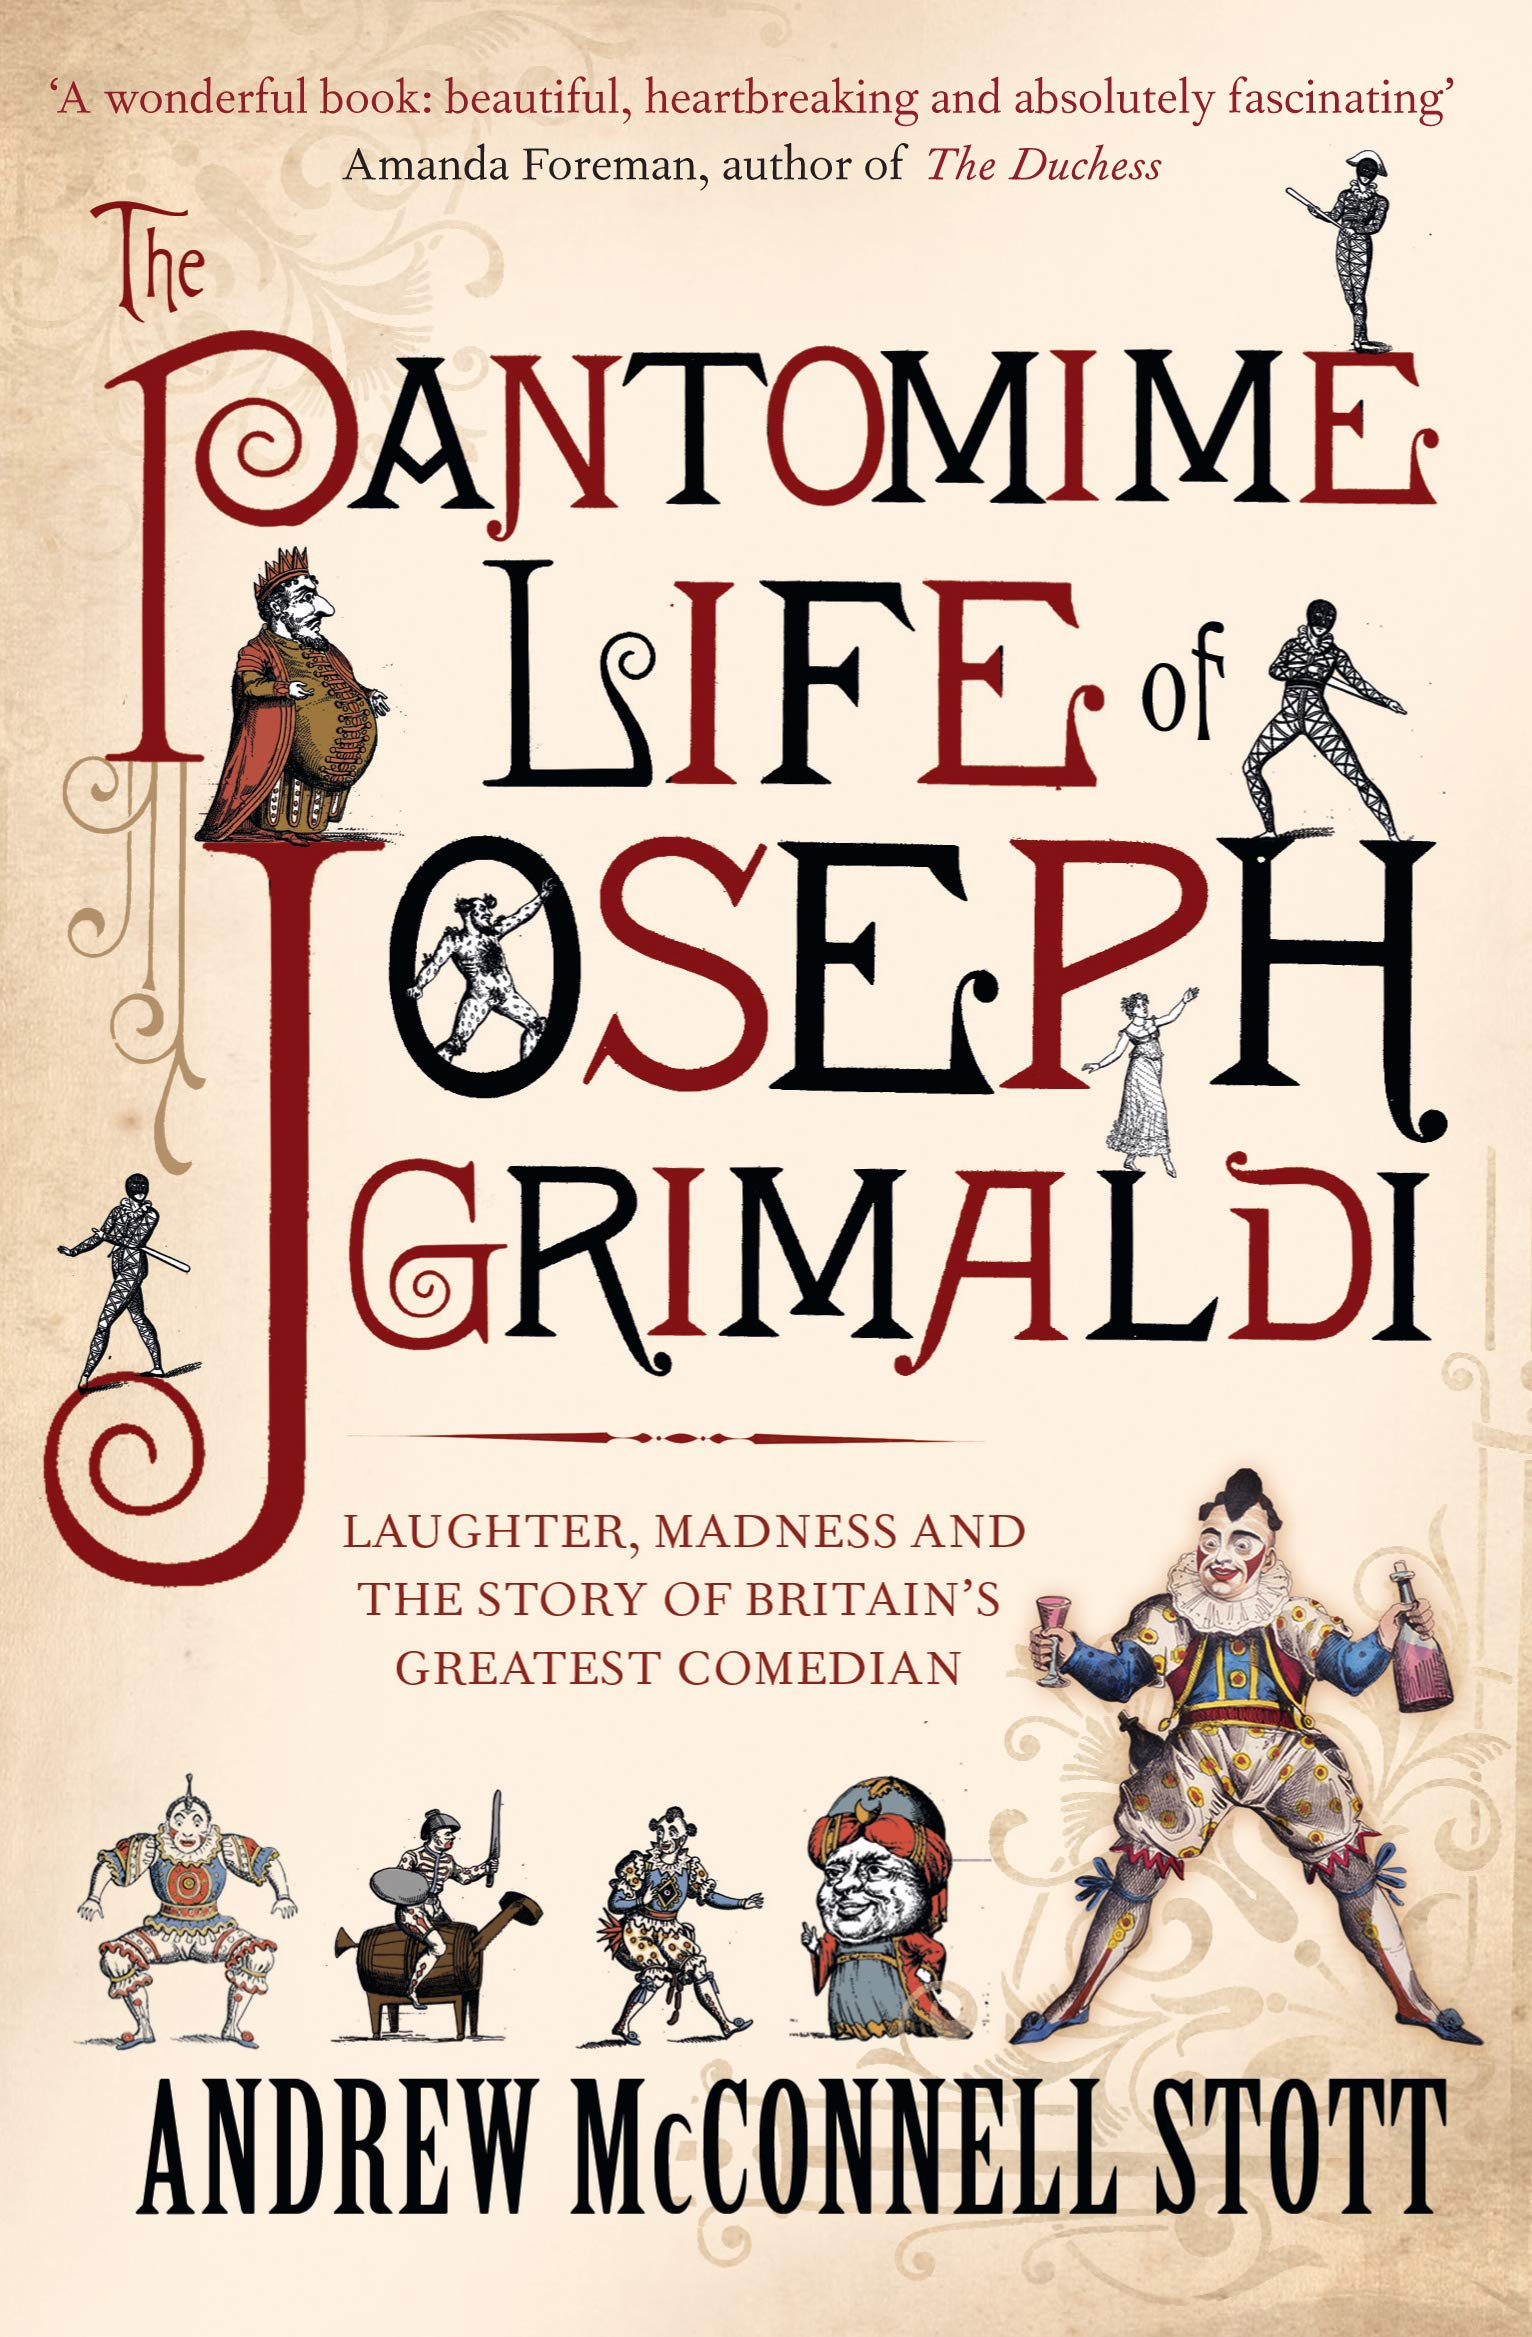 Image OfThe Pantomime Life Of Joseph Grimaldi: Laughter, Madness And The Story Of Britain's Greatest Comedian